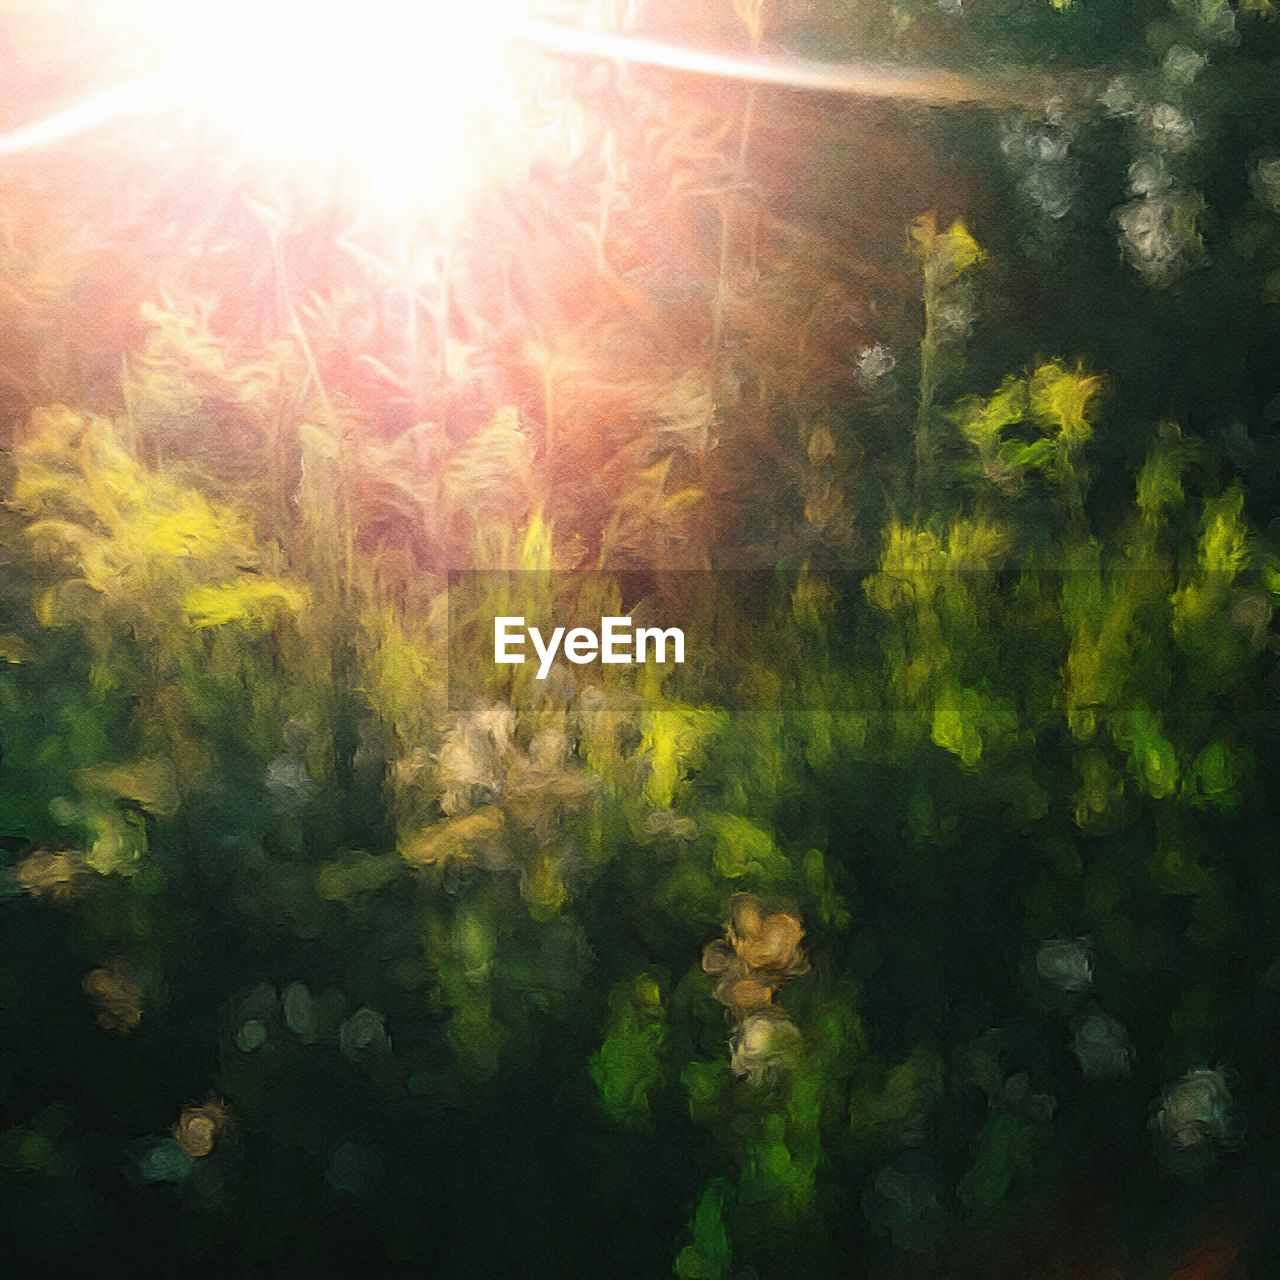 sunbeam, lens flare, sun, sunlight, nature, plant, growth, beauty in nature, no people, day, outdoors, forest, tree, close-up, freshness